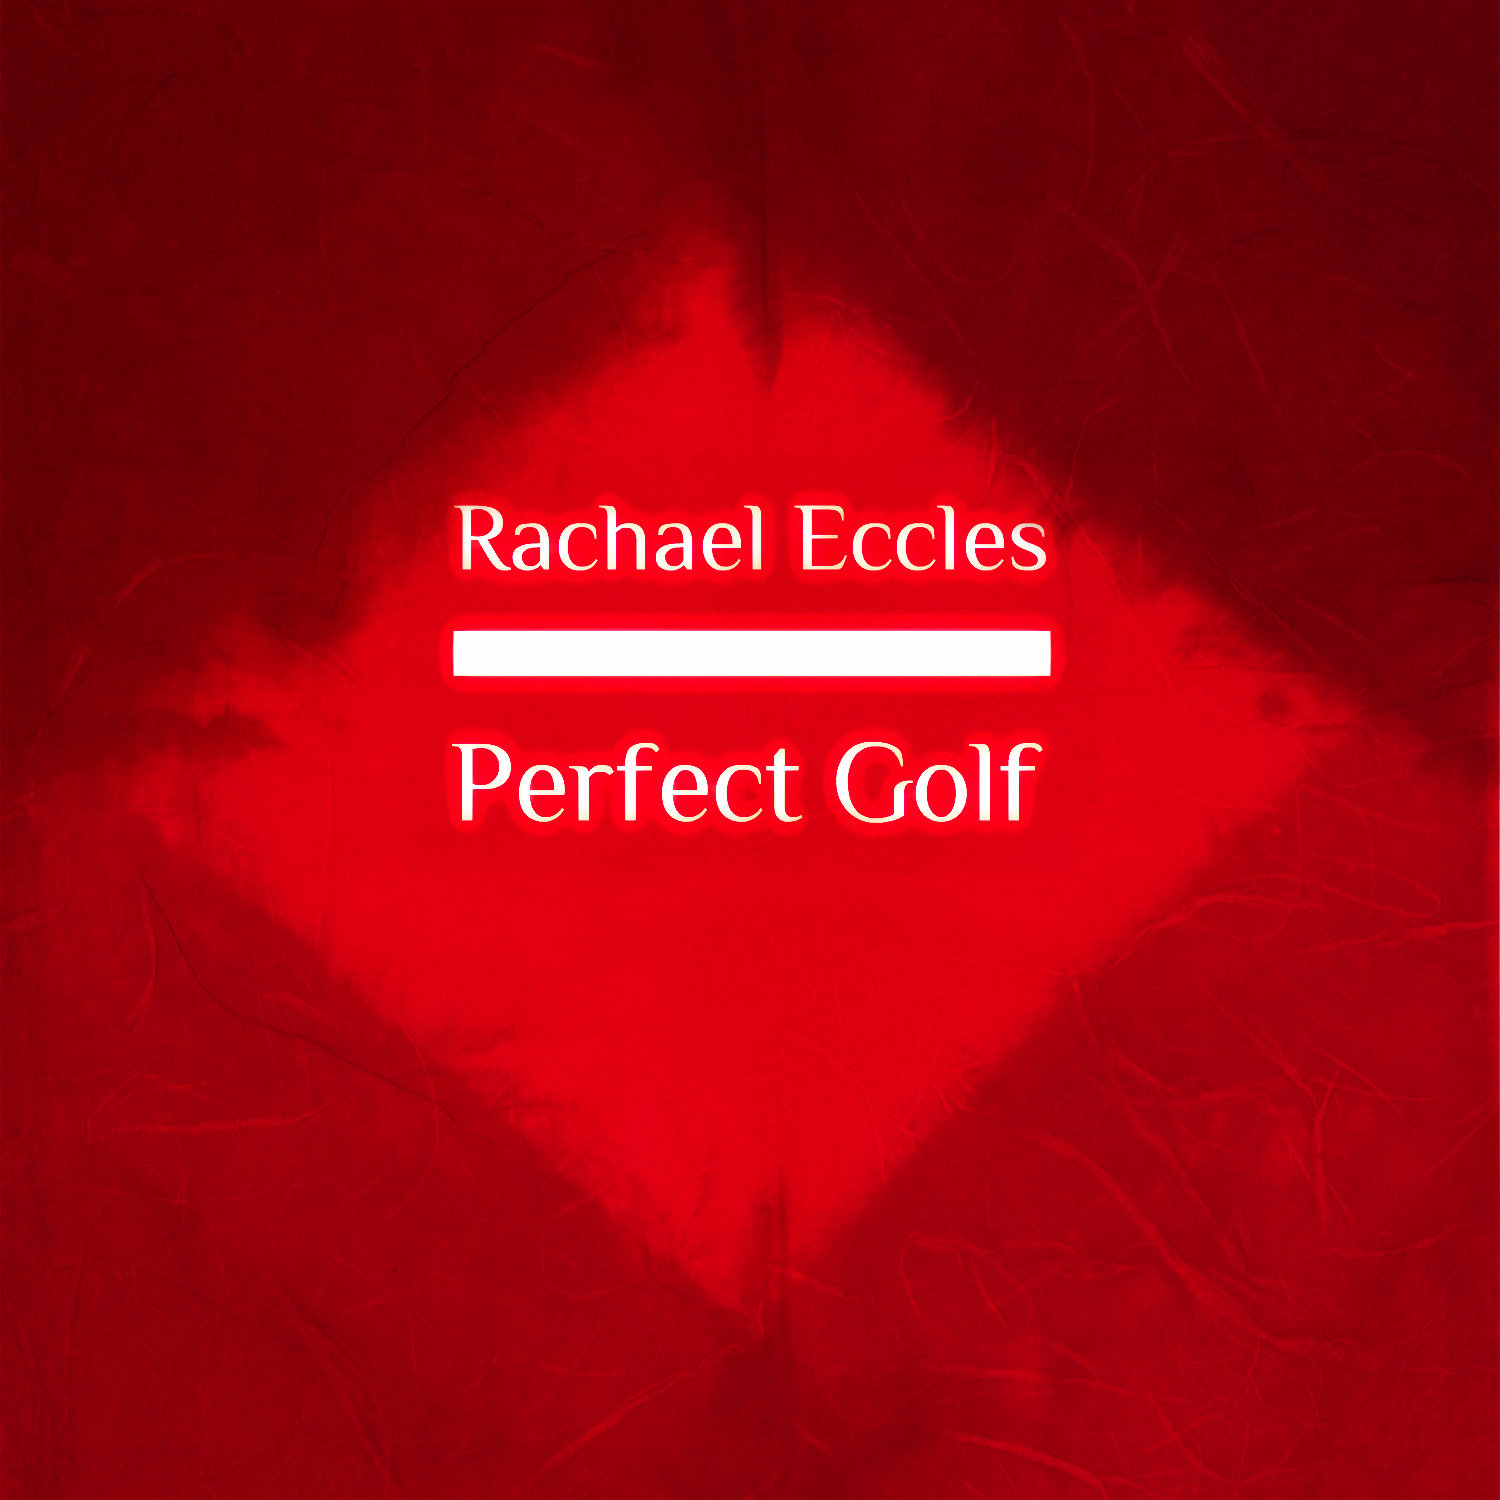 Perfect Golf, Confidence, Focus and self belief as a golfer, hypnosis, hypnotherapy cd